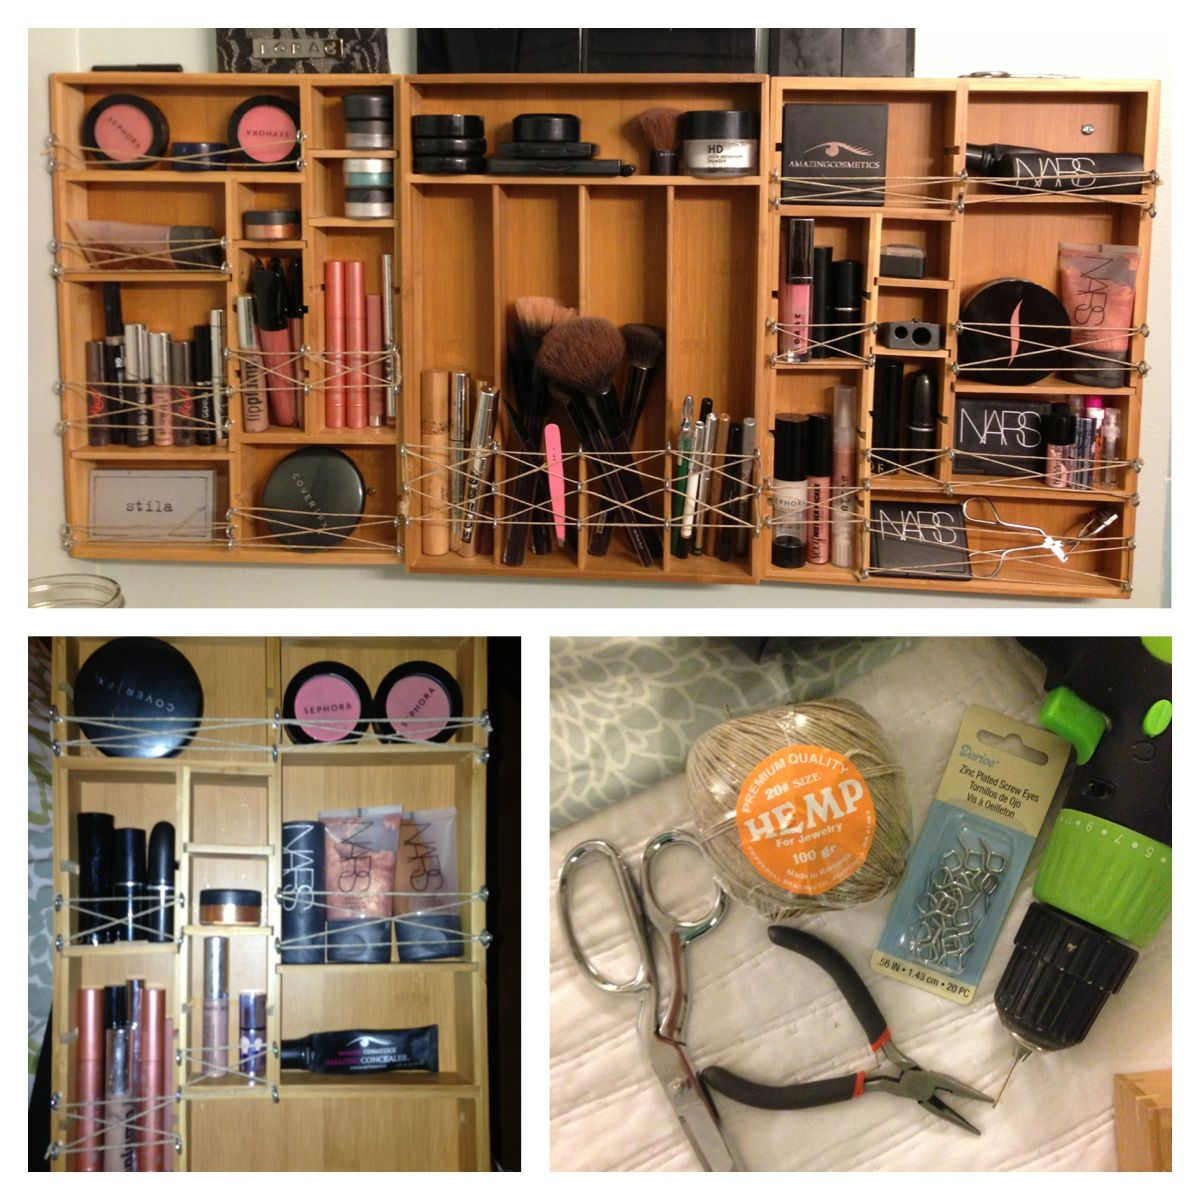 Wall Organizers For Home diy wall makeup organizer: you'll need: -enough bamboo drawer